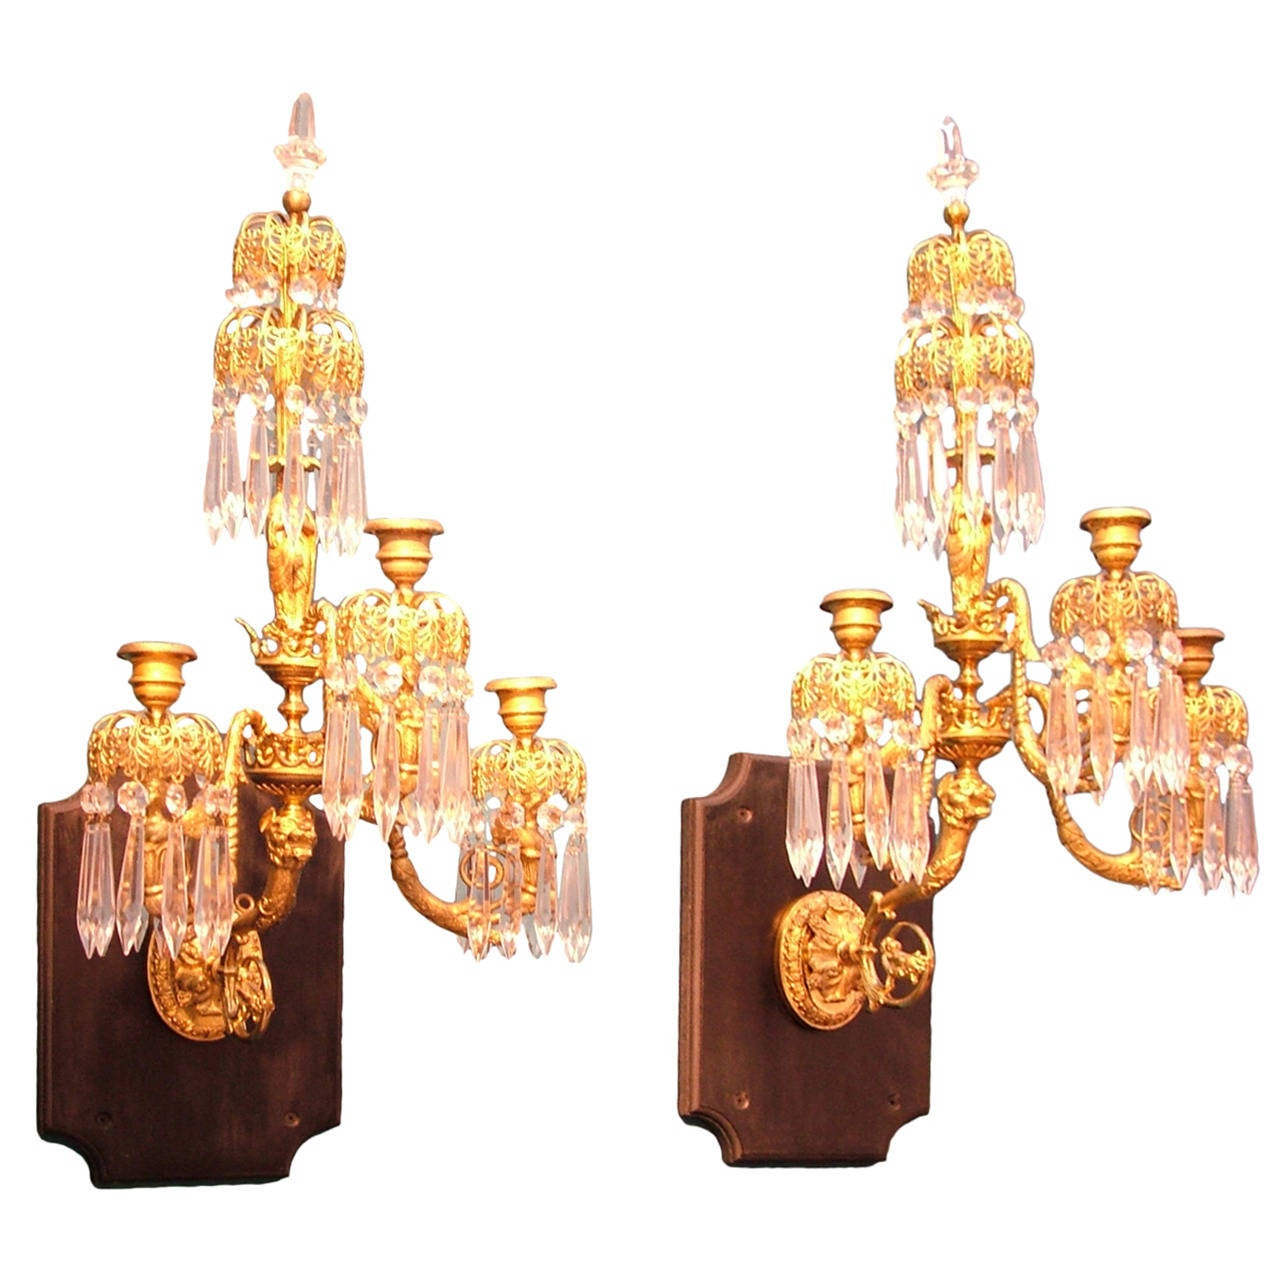 Wall Lights For Period Homes : A pair of Regency period gilt bronze Wall Lights. at 1stdibs